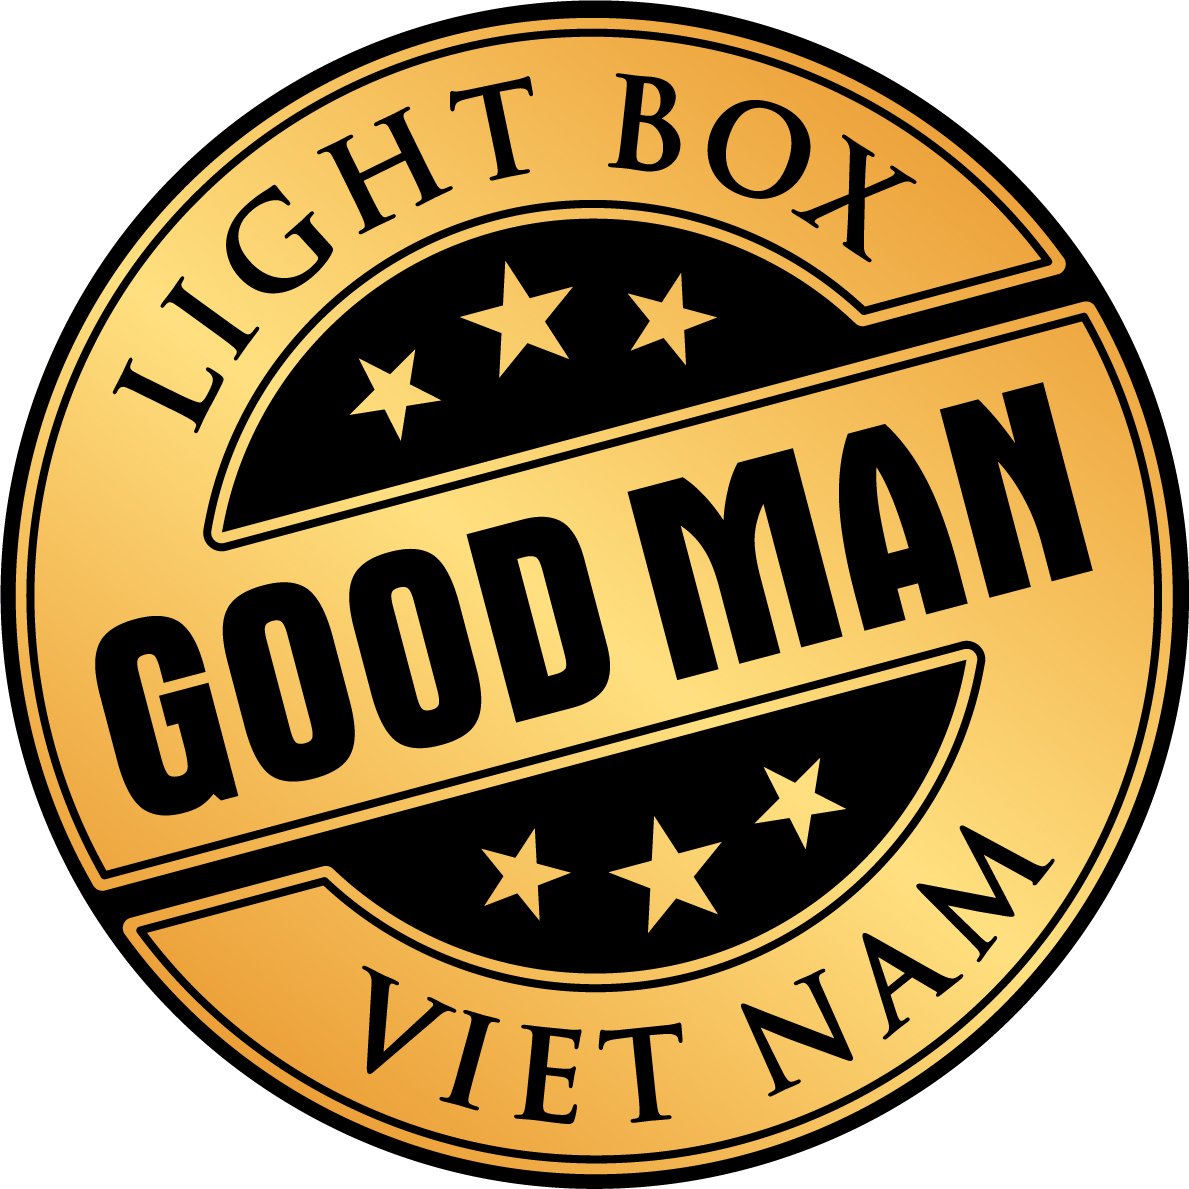 LightBoxGoodMan's profile picture